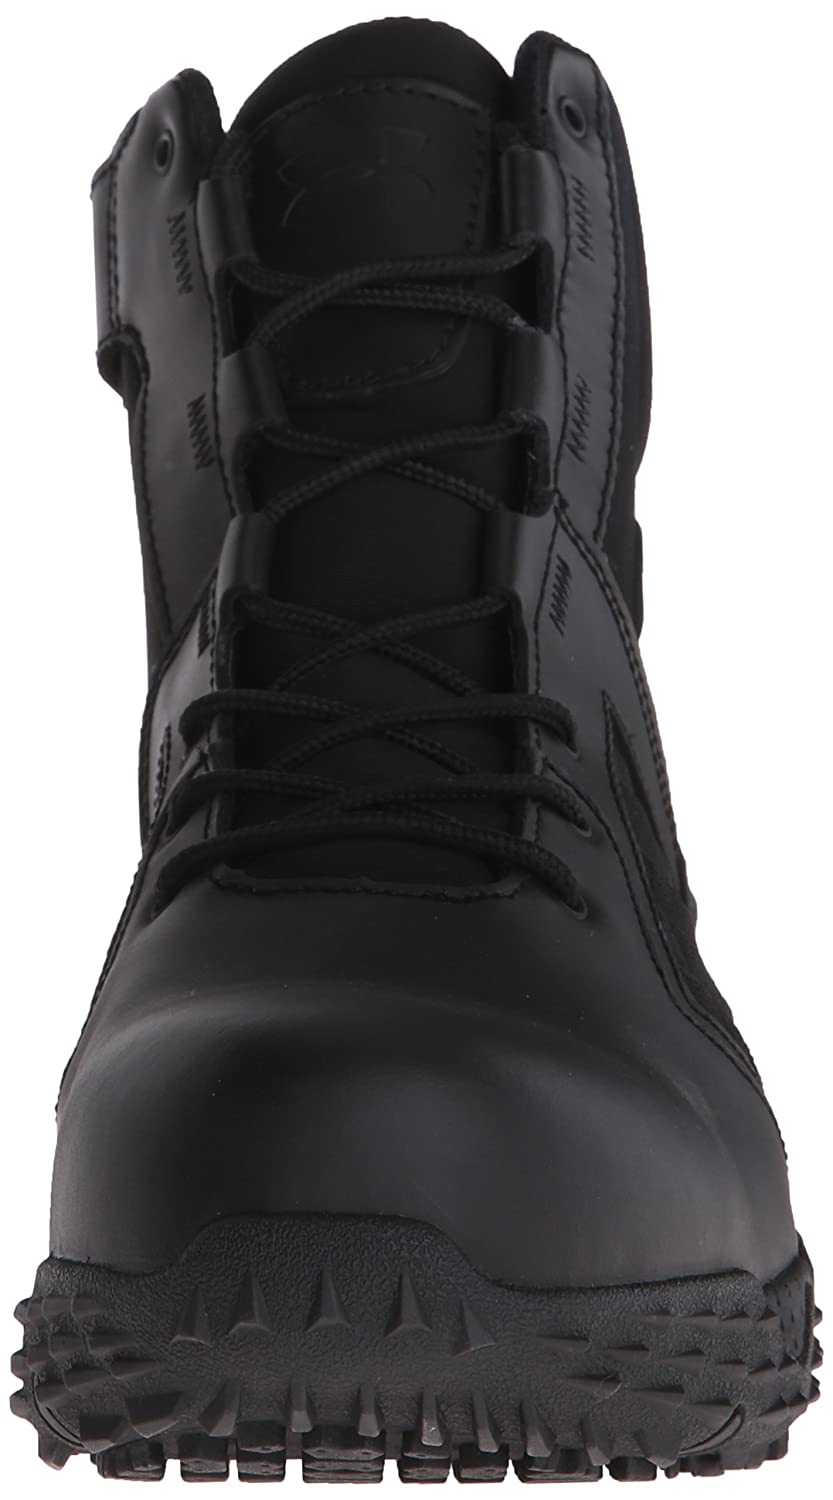 88a7284c1eb Amazon.com | Under Armour Men's Zip 2.0 Protect Military and ...